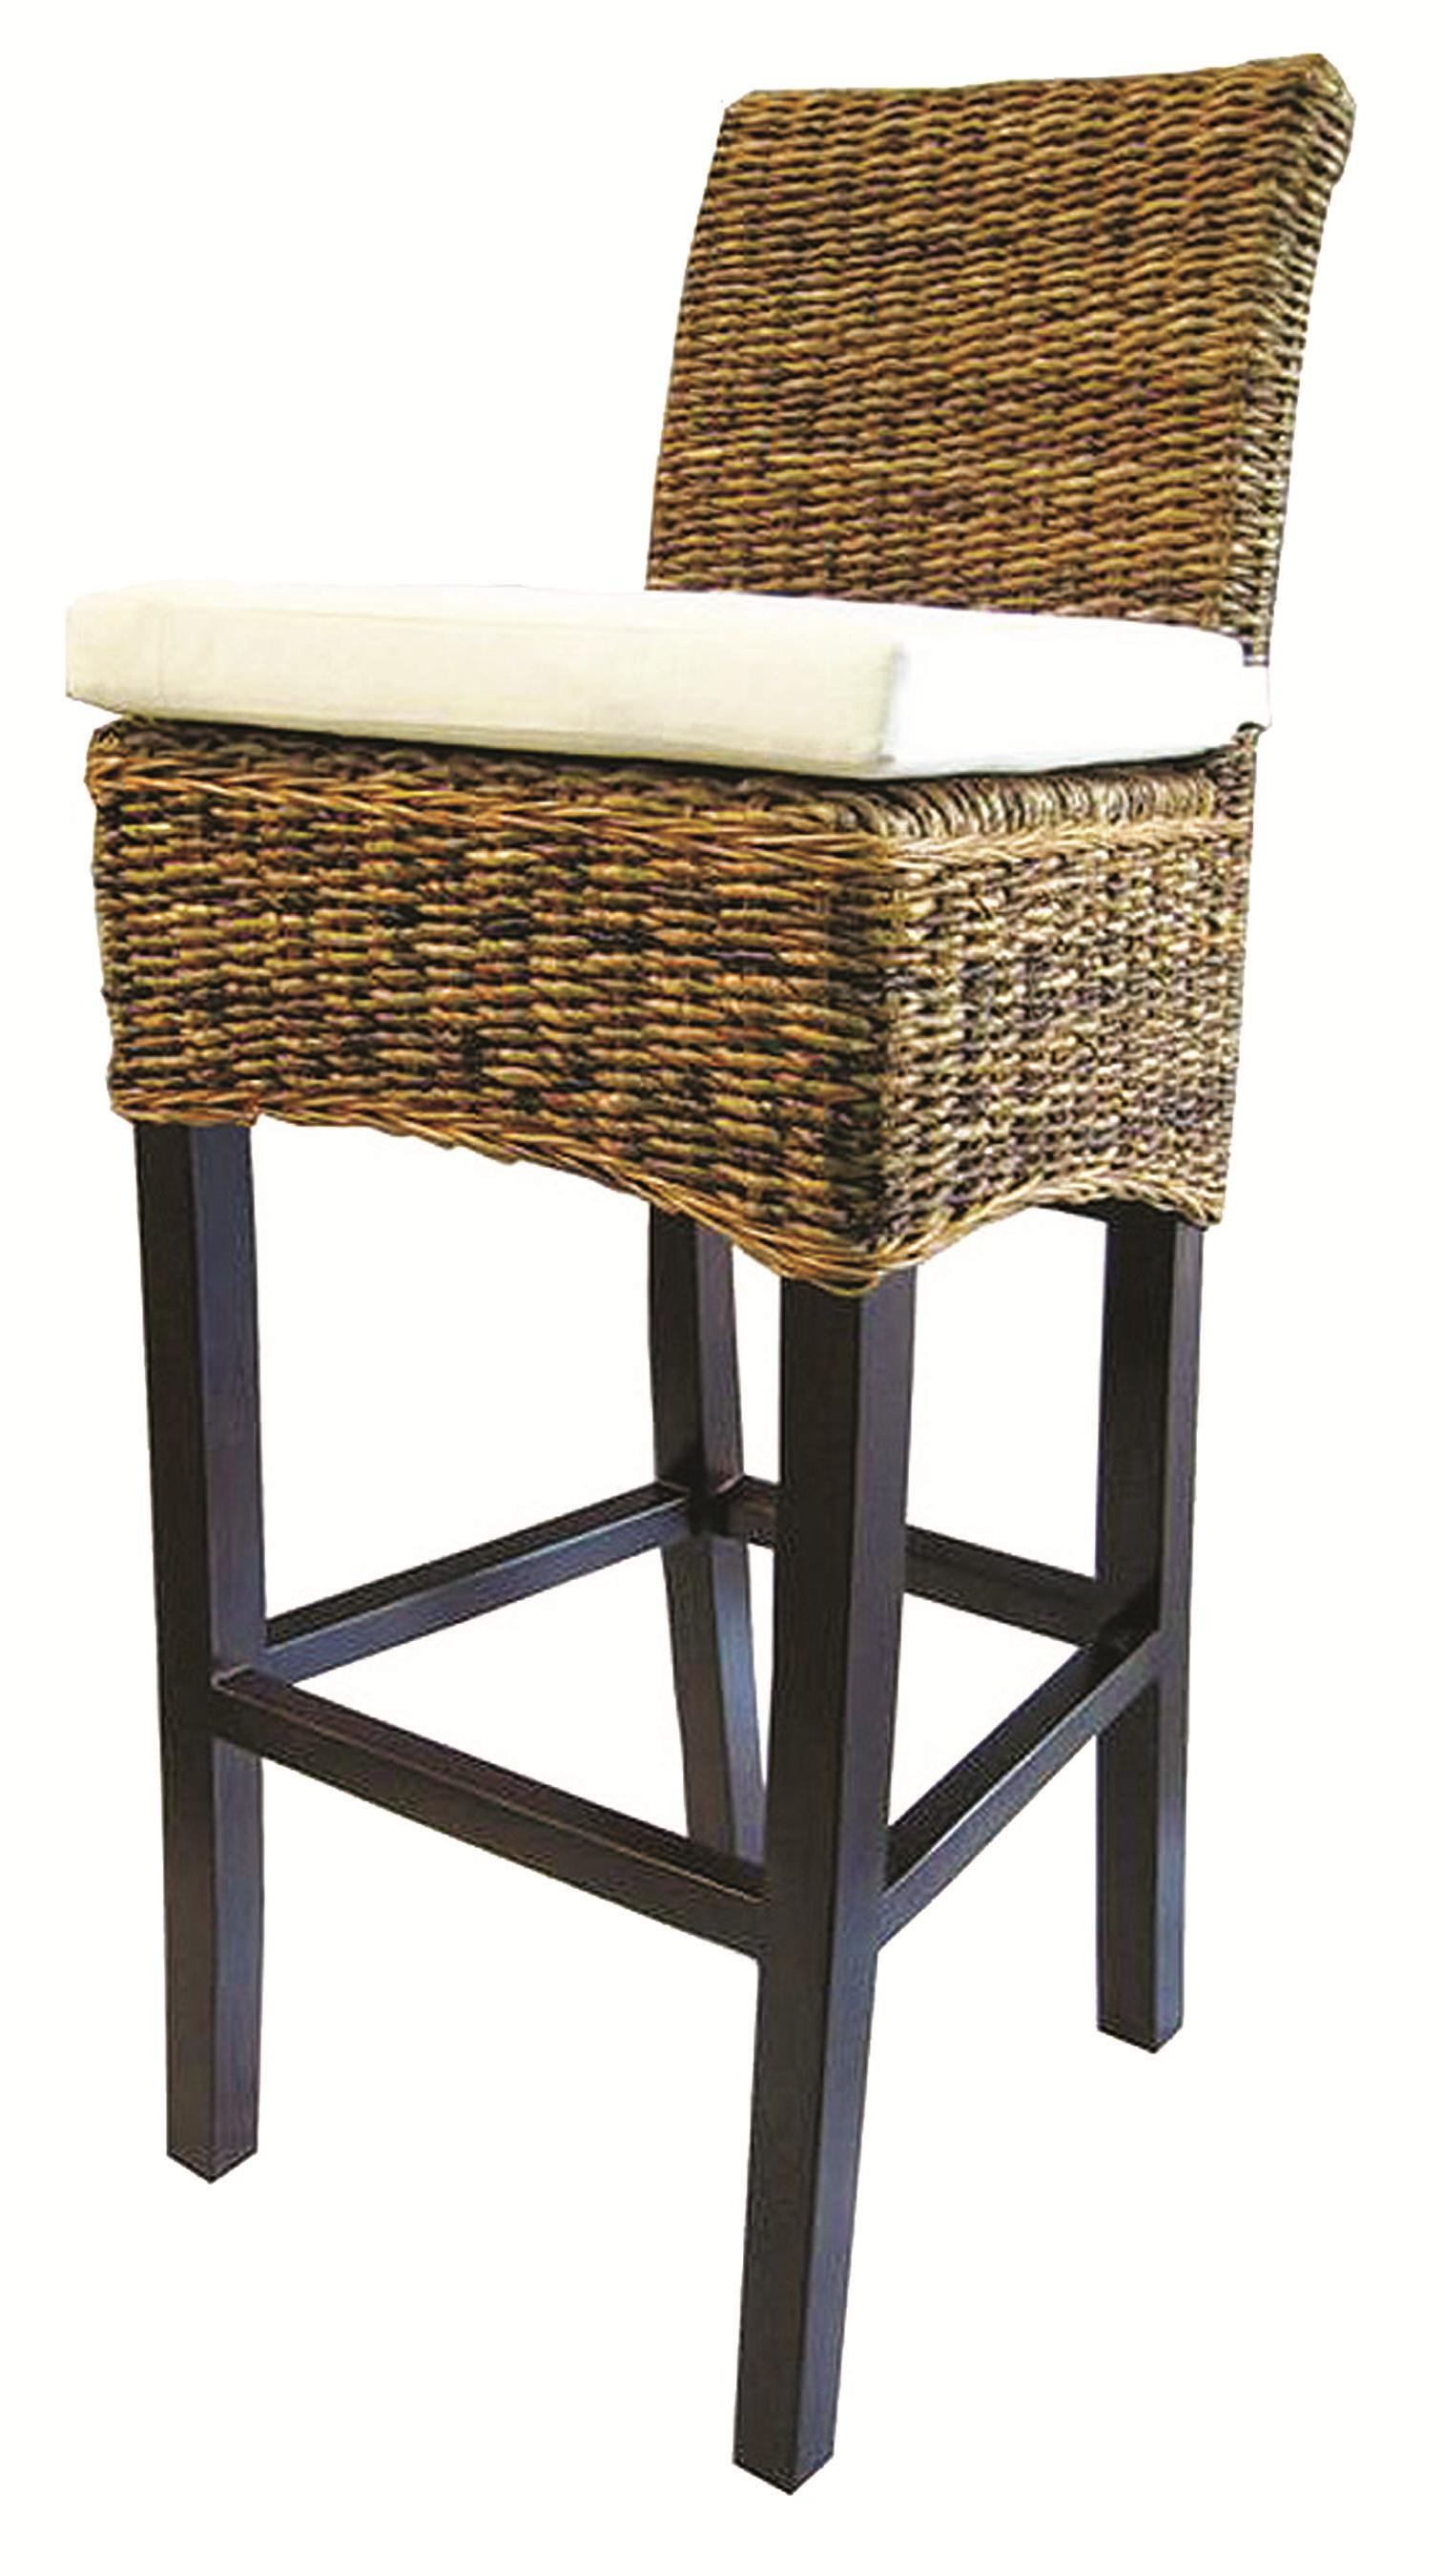 Four Hands Grass Roots Woven Banana Leaf Barstool w  : products2Ffourhands2Fcolor2Fgrass20rootsjchr b1bs b0 from www.jacksonvillefurnituremart.com size 1515 x 2700 jpeg 294kB